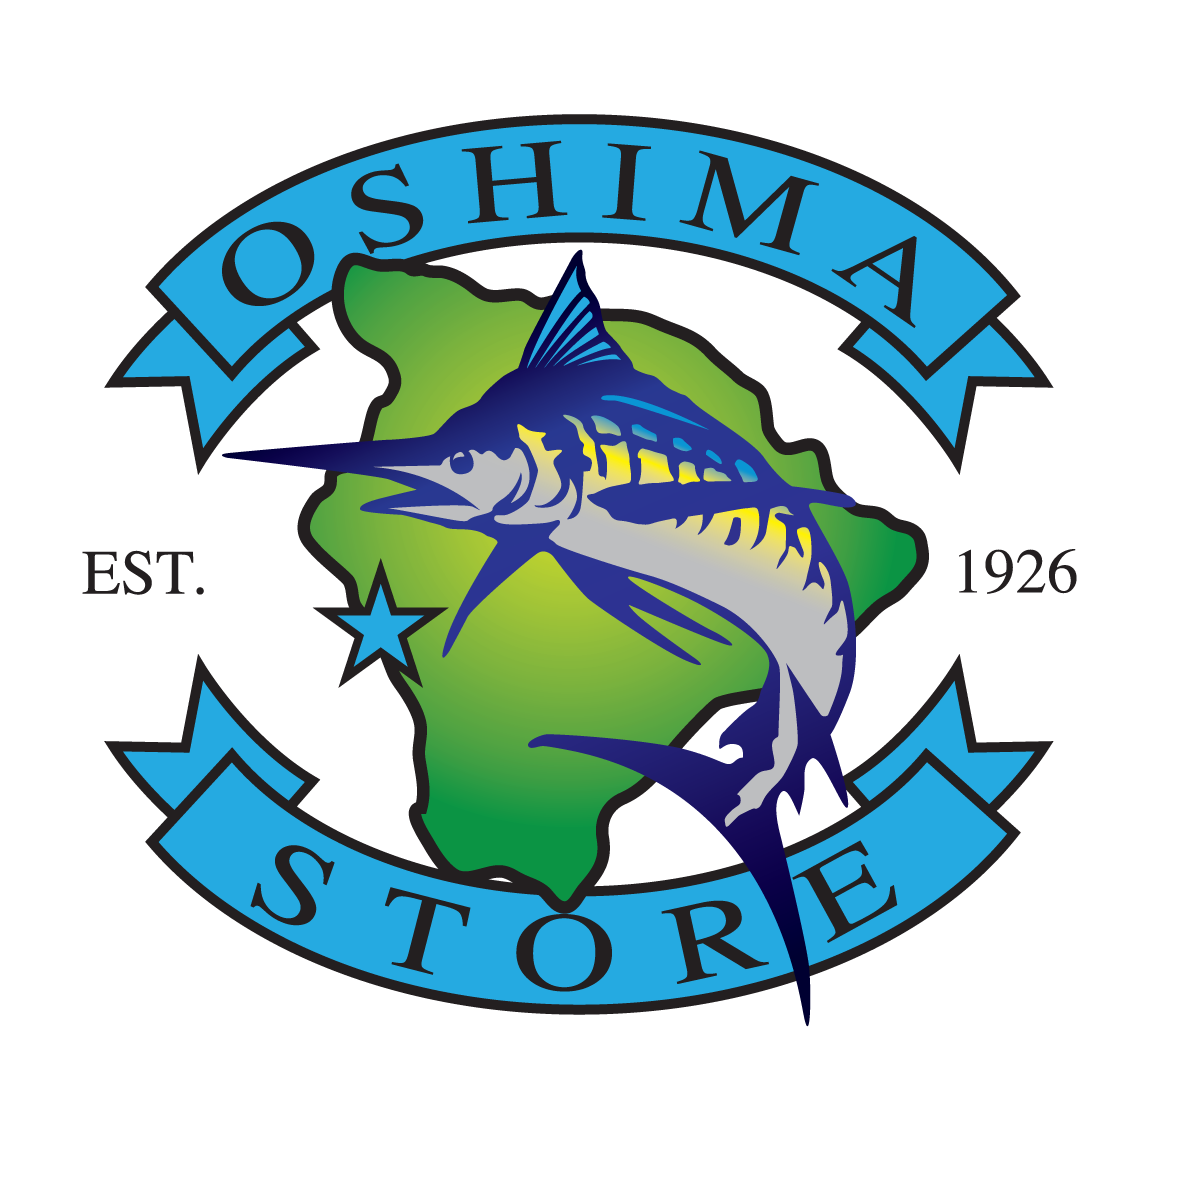 oshima store.png